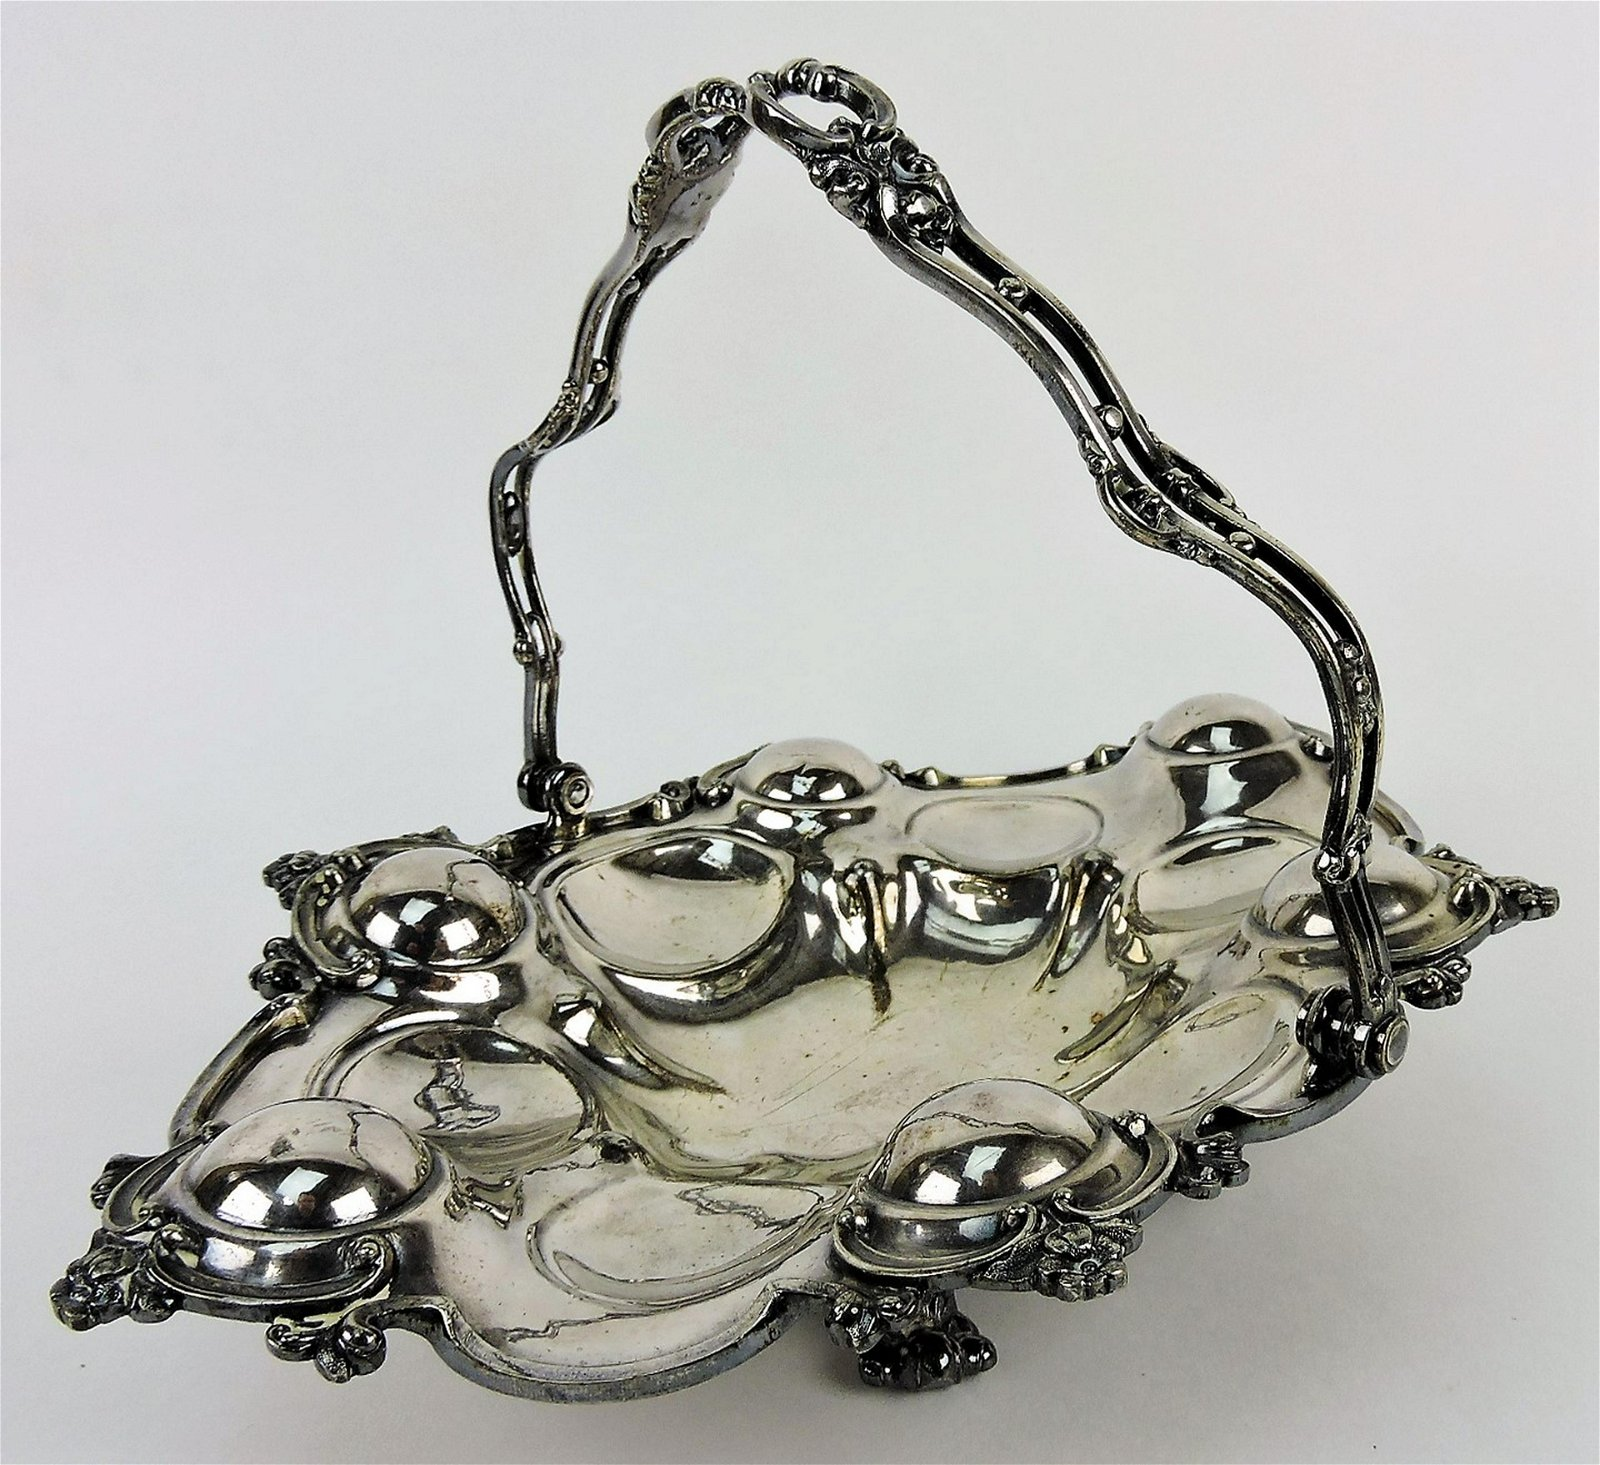 Reed & Barton silver plate oyster